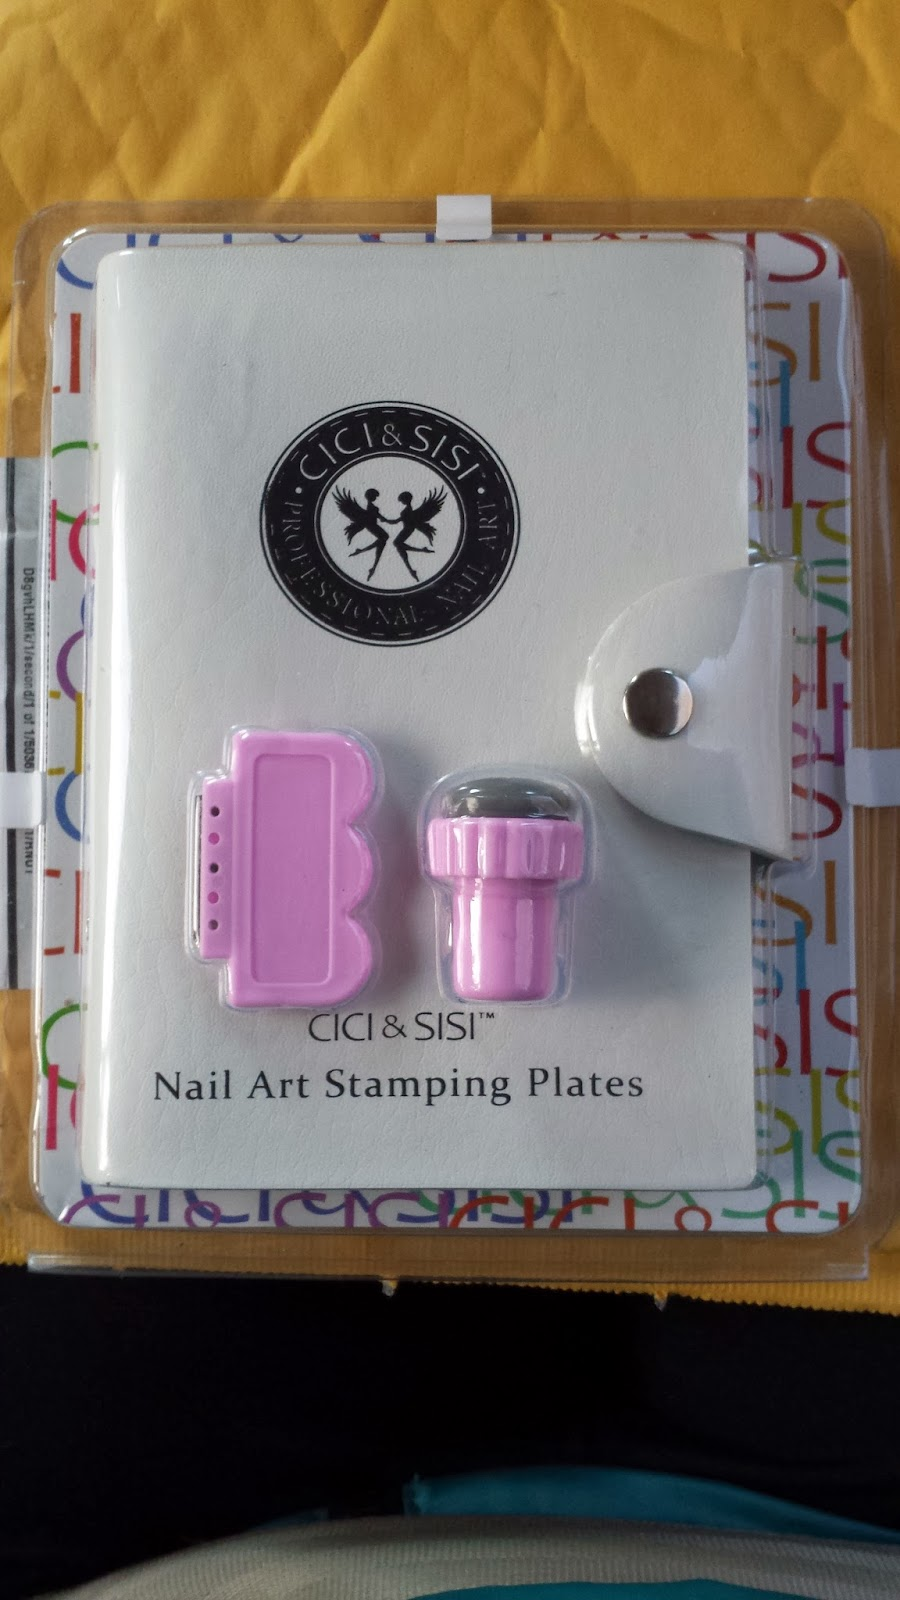 The Polished KOI: New CICI & SISI Stamping: Set 1, Part 1